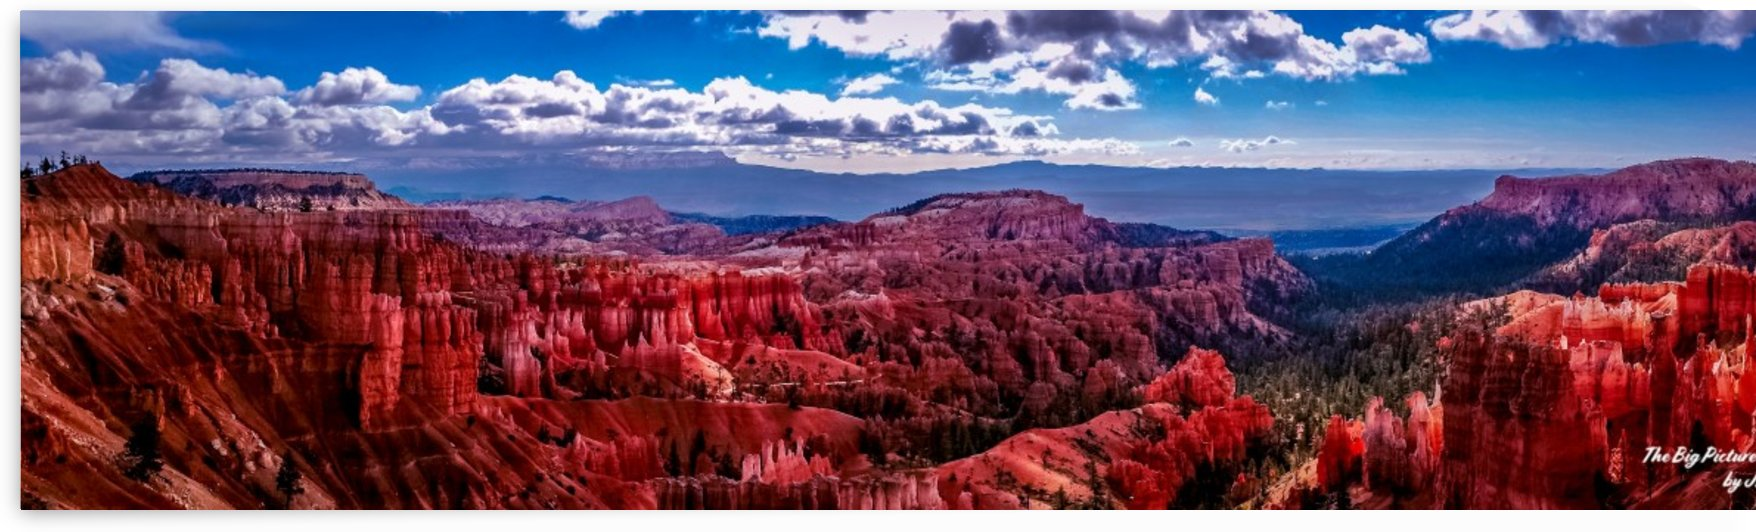 Bryce Canyon Sunset Point by The Big Picture by JD